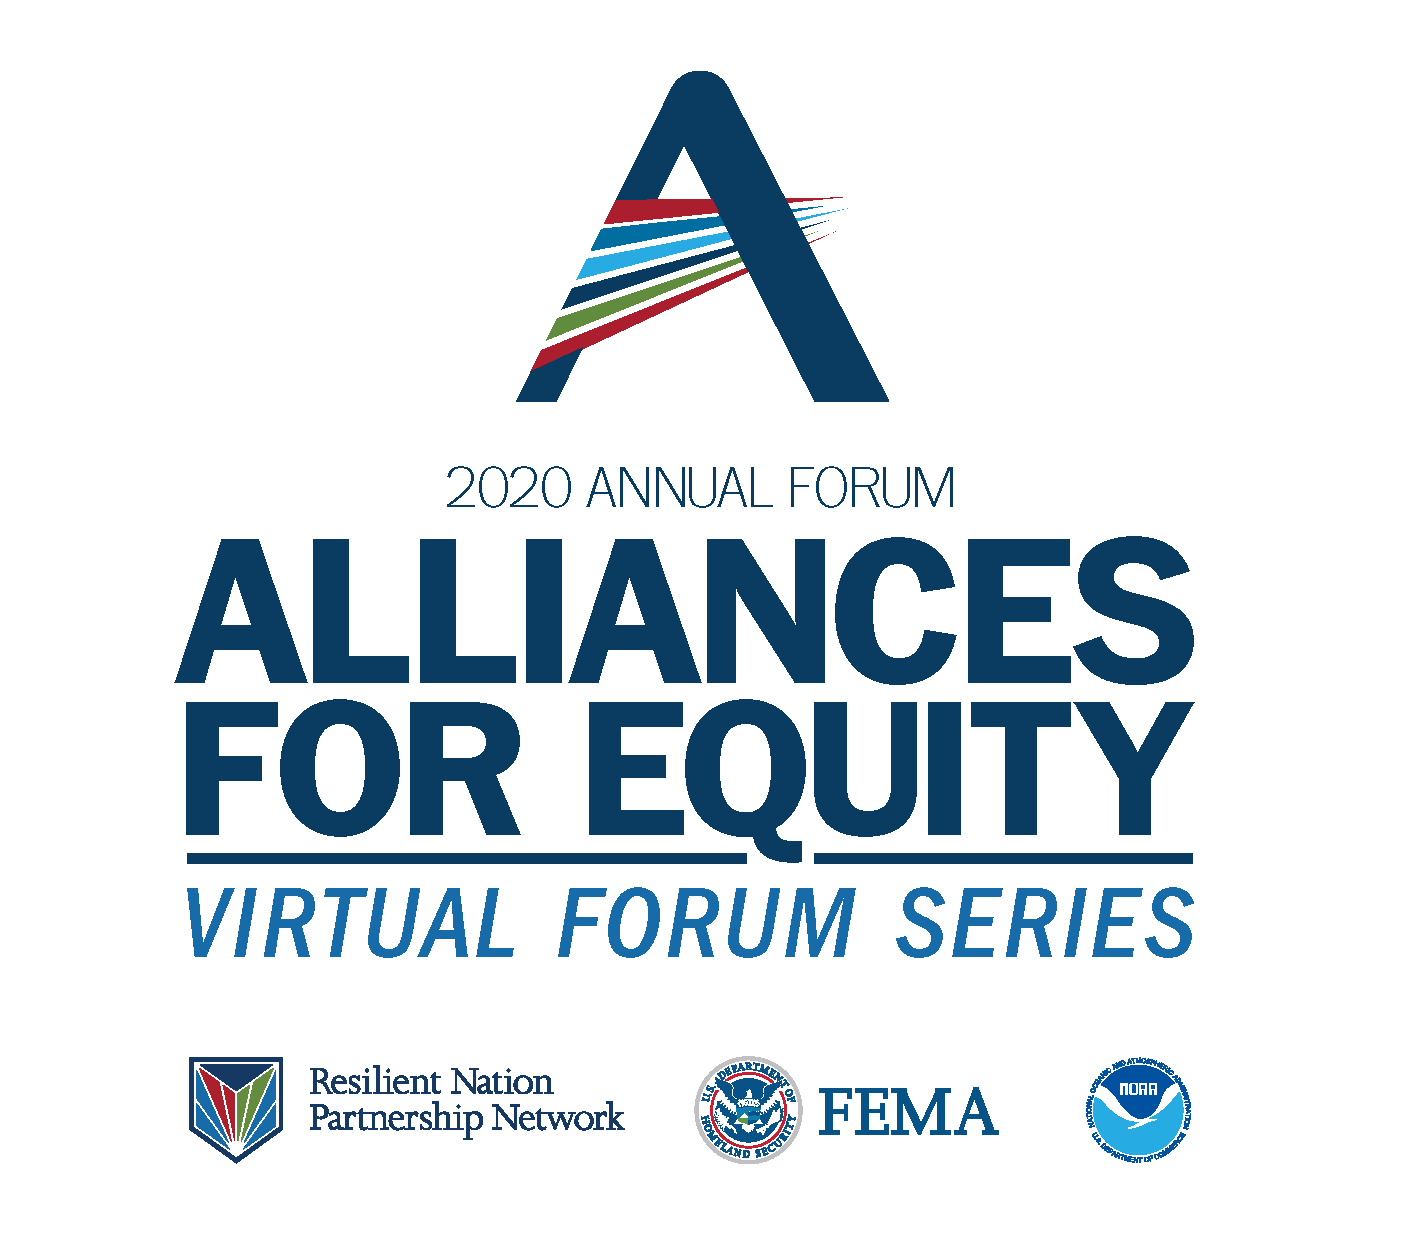 Alliance for Equity Virtual Forum Seris